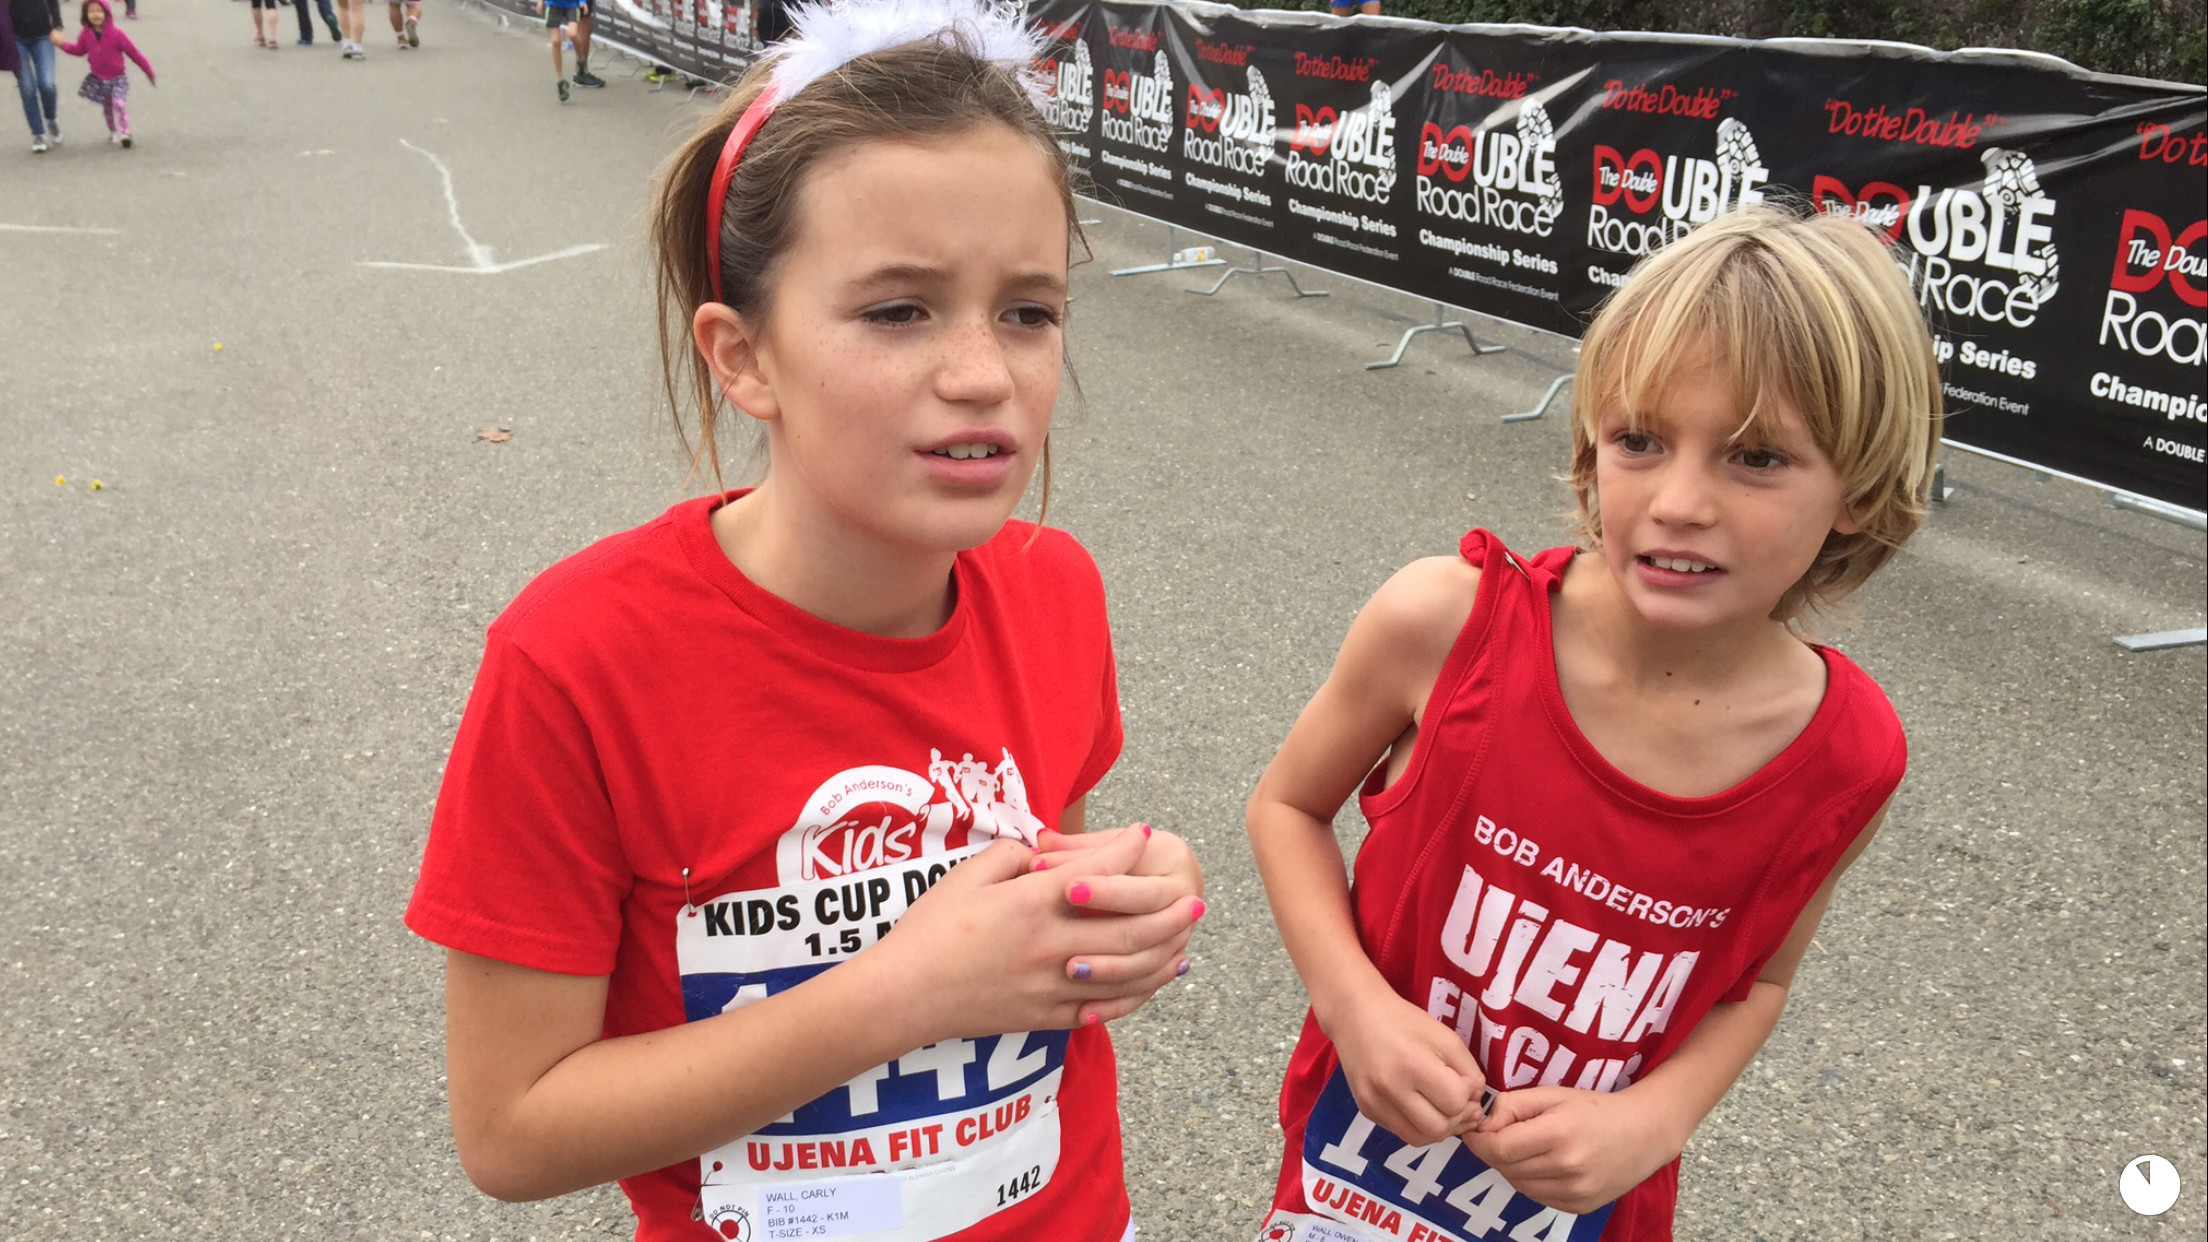 7 Ways to Get Your Kids into Running